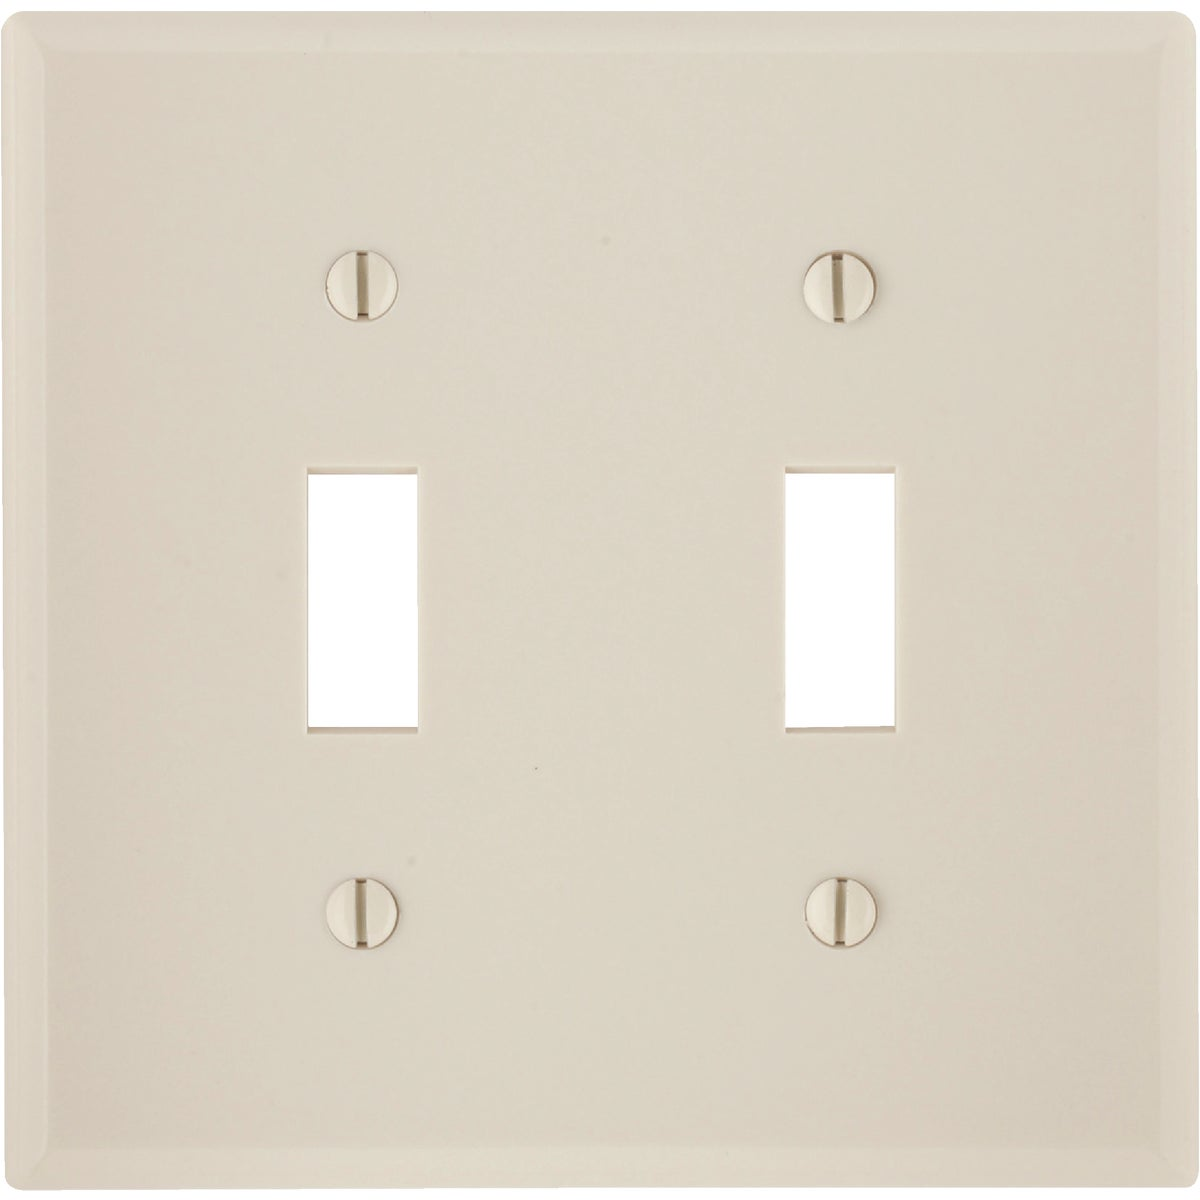 LT ALM 2-TGL WALLPLATE - 000-78009 by Leviton Mfg Co